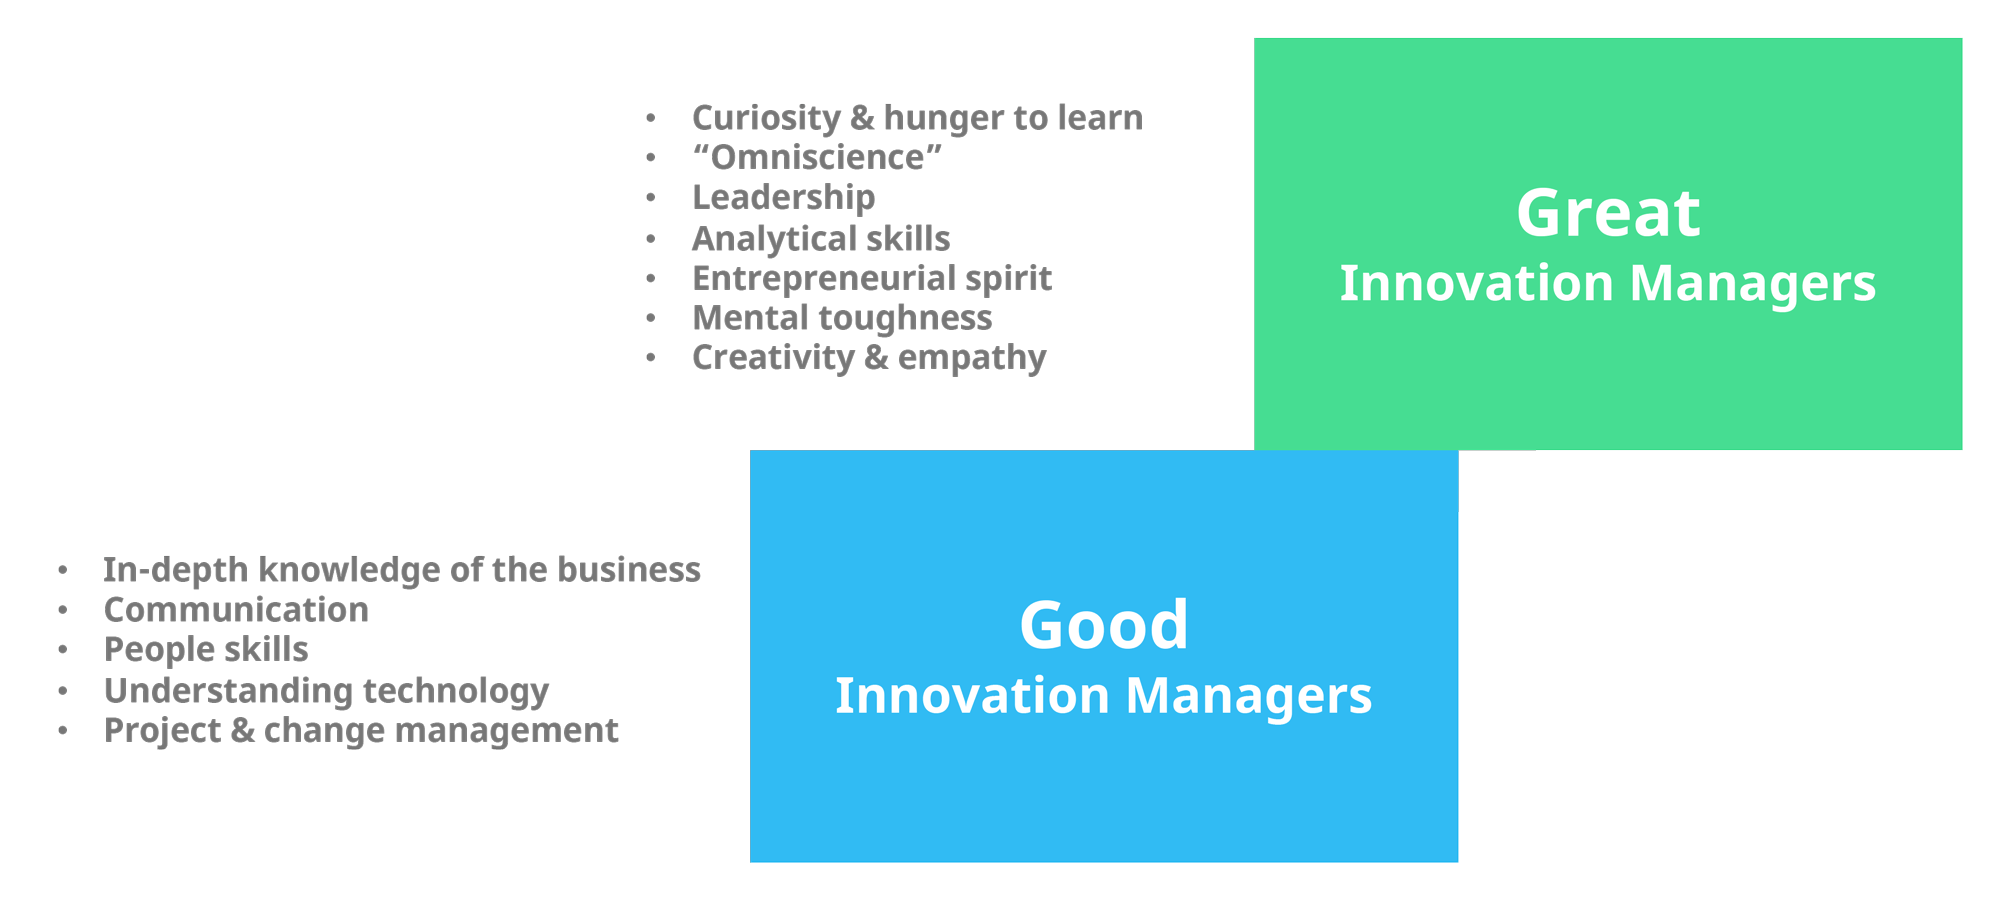 The difference between good and great innovation managers